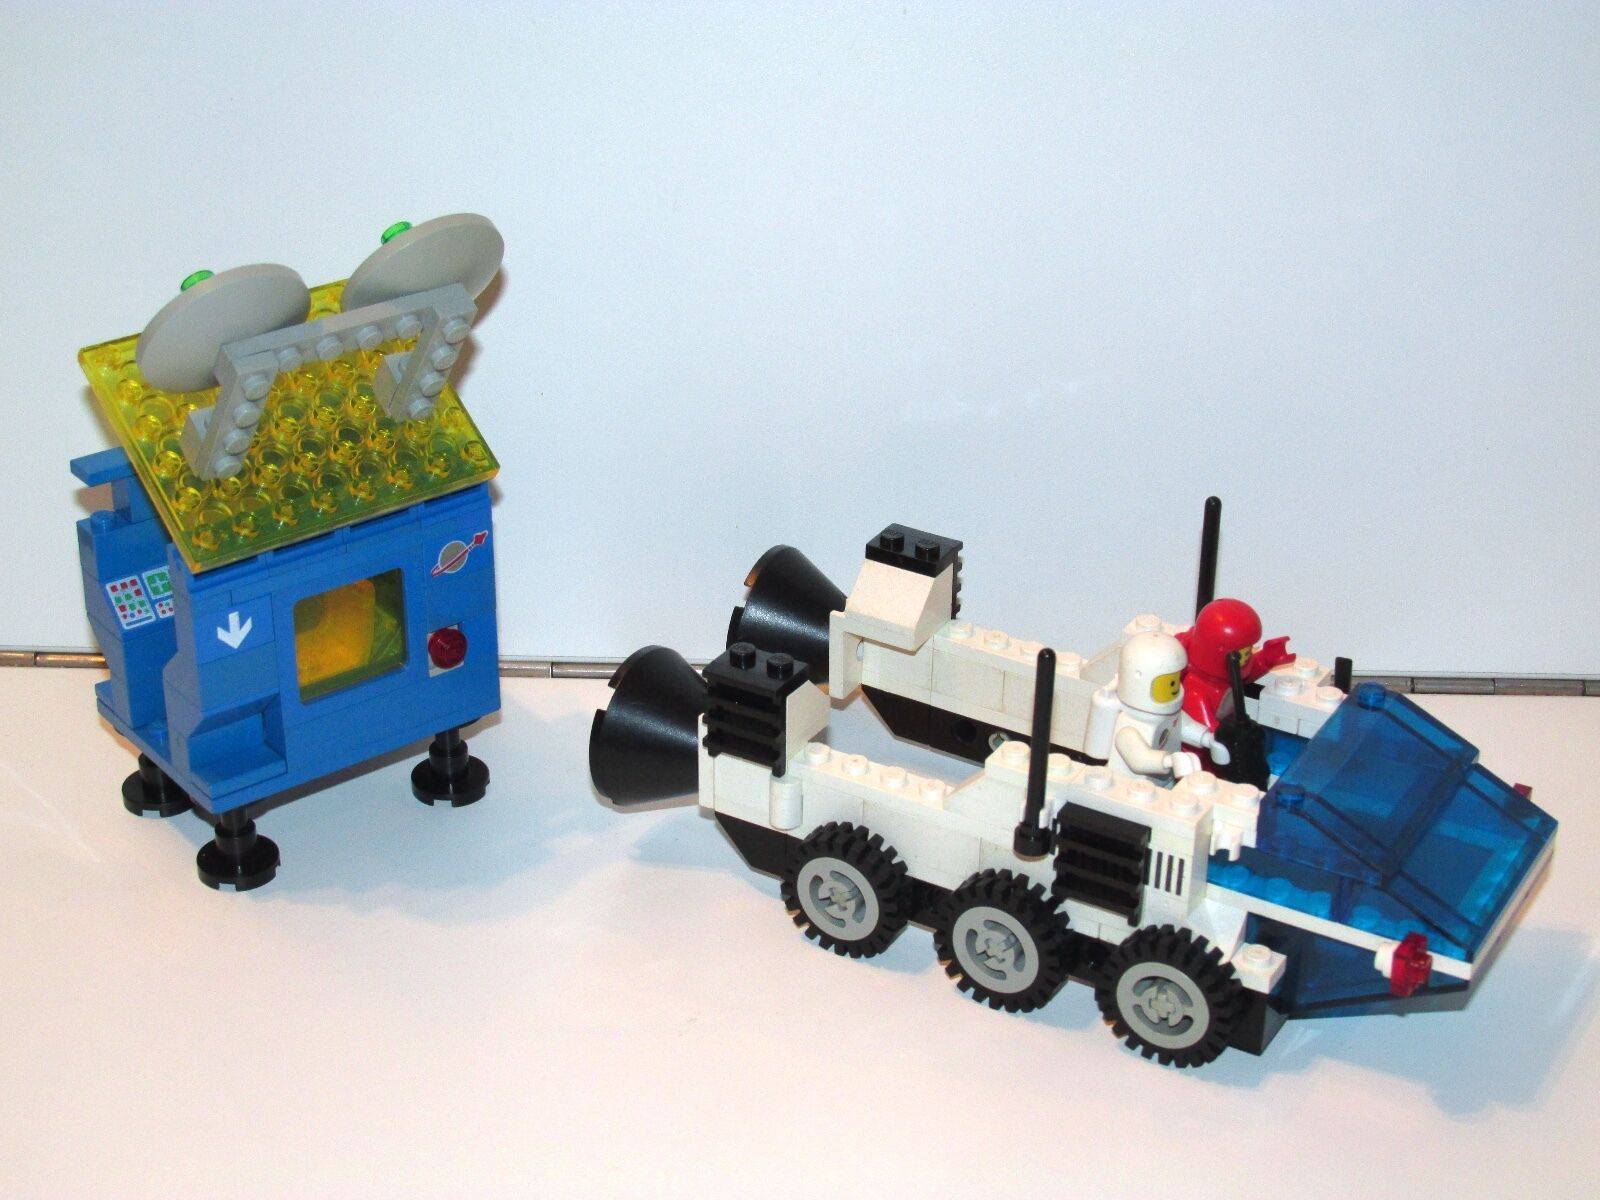 LEGO SPACE No 6927 ALL-TERRAIN VEHICLE VEHICLE VEHICLE 100% COMPLETE 1980s (NO INSTRUCTIONS) 129bb5